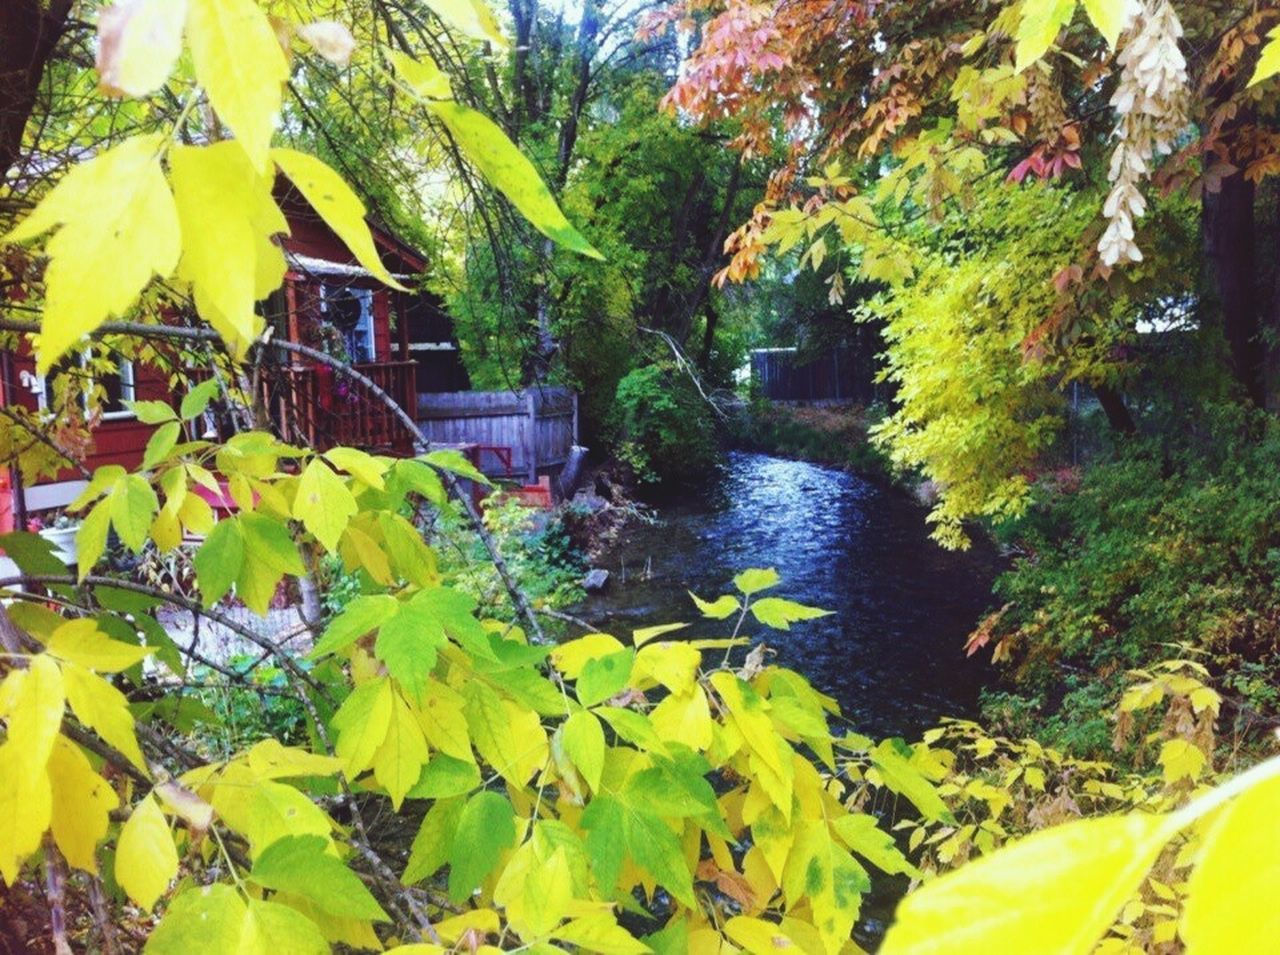 leaf, yellow, tree, growth, autumn, day, nature, outdoors, plant, green color, beauty in nature, no people, built structure, water, architecture, building exterior